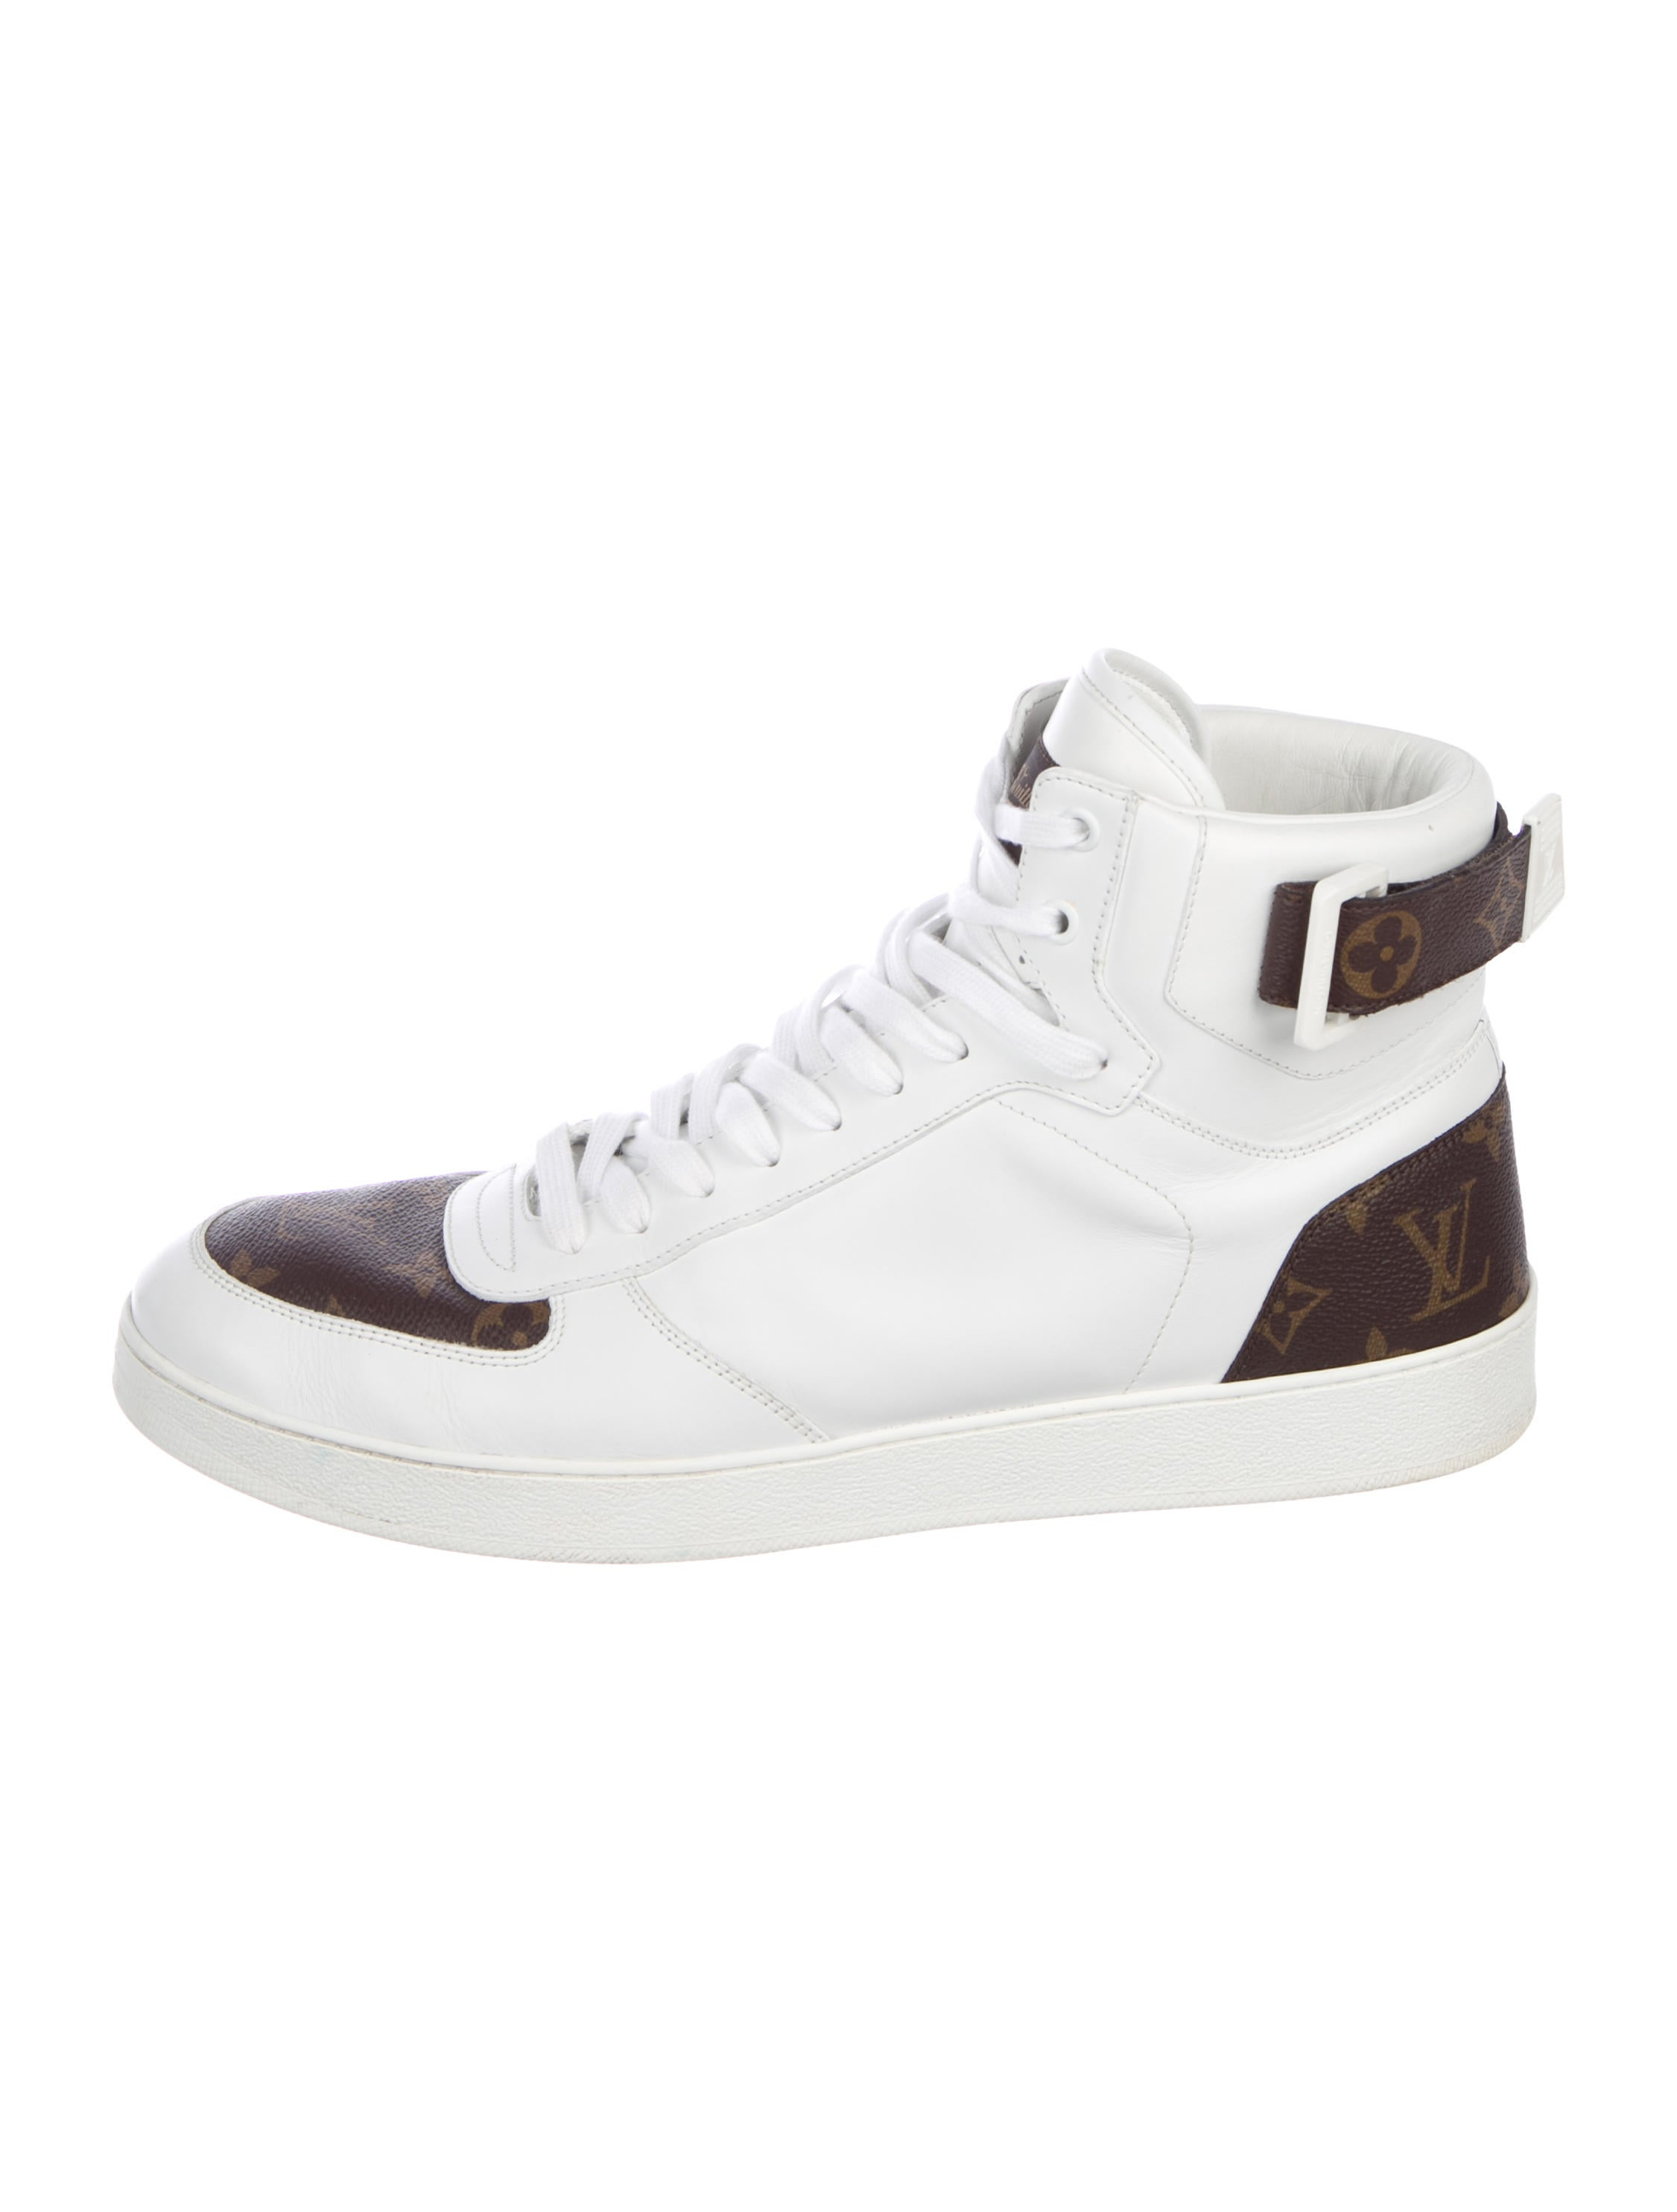 9a13bef0e86 Louis Vuitton Monogram-Trimmed High-Top Sneakers - Shoes - LOU212355 ...